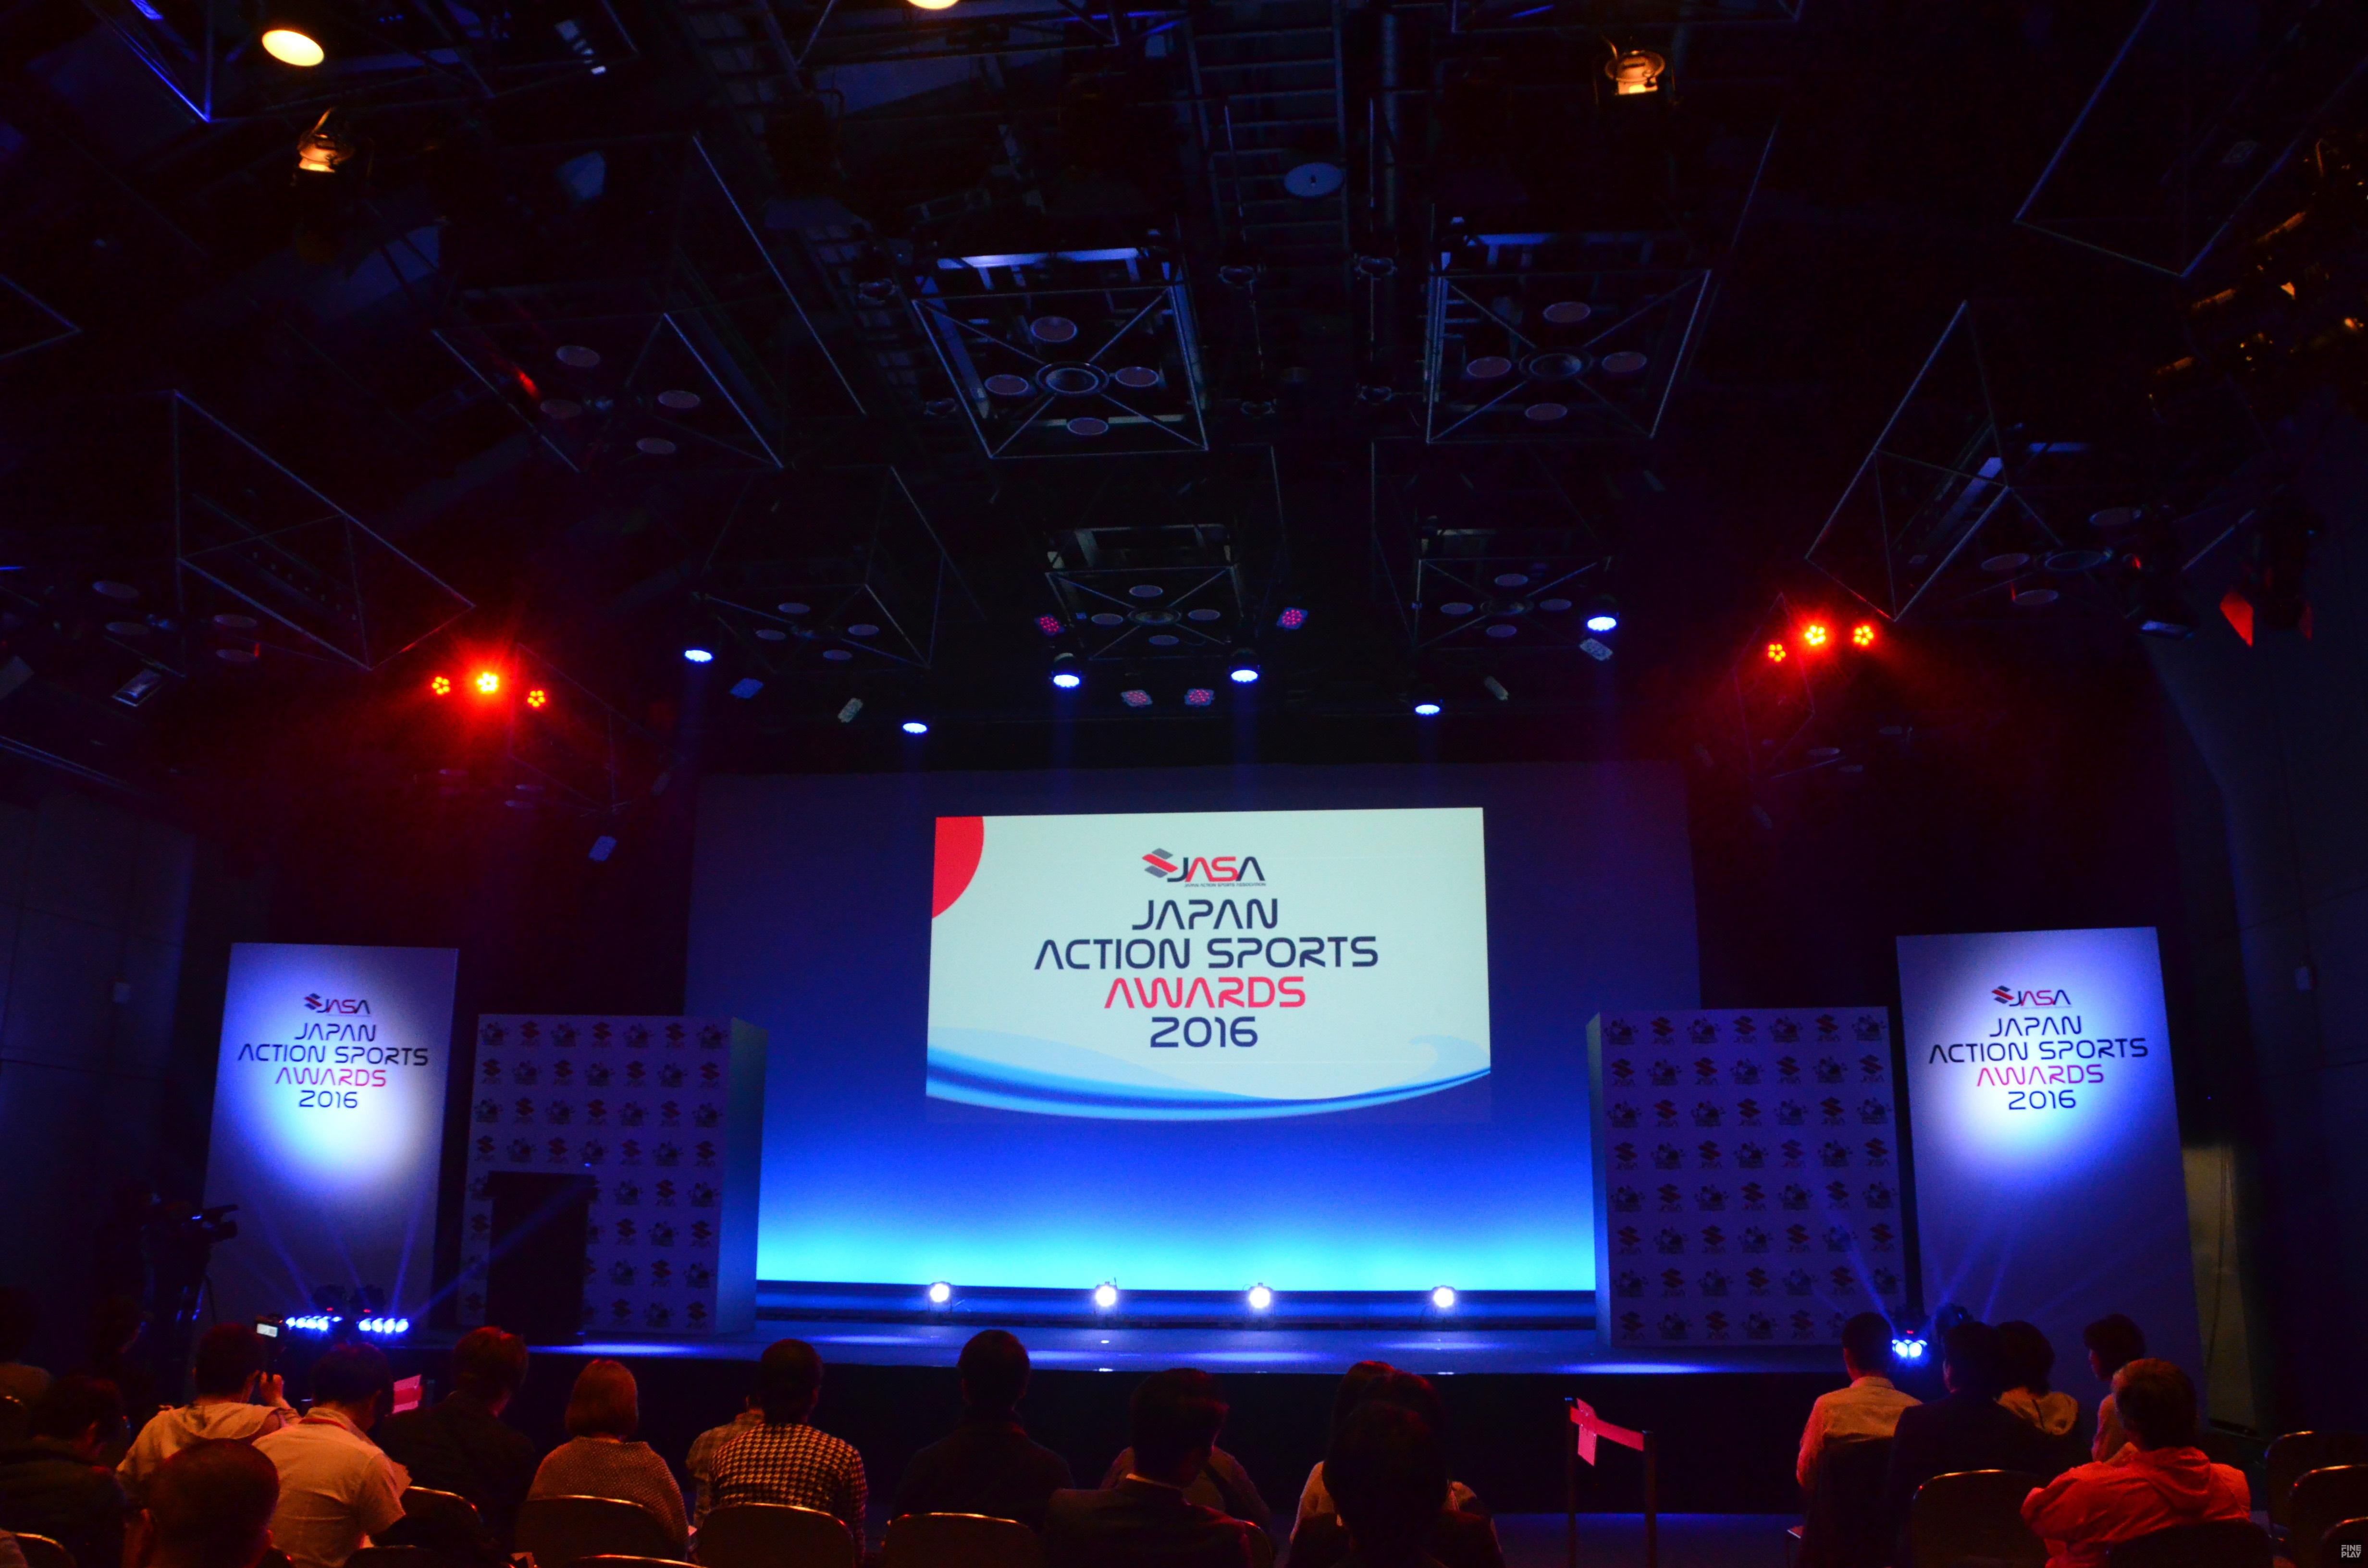 『JAPAN ACTION SPORTS AWARDS 2016』イベントレポート